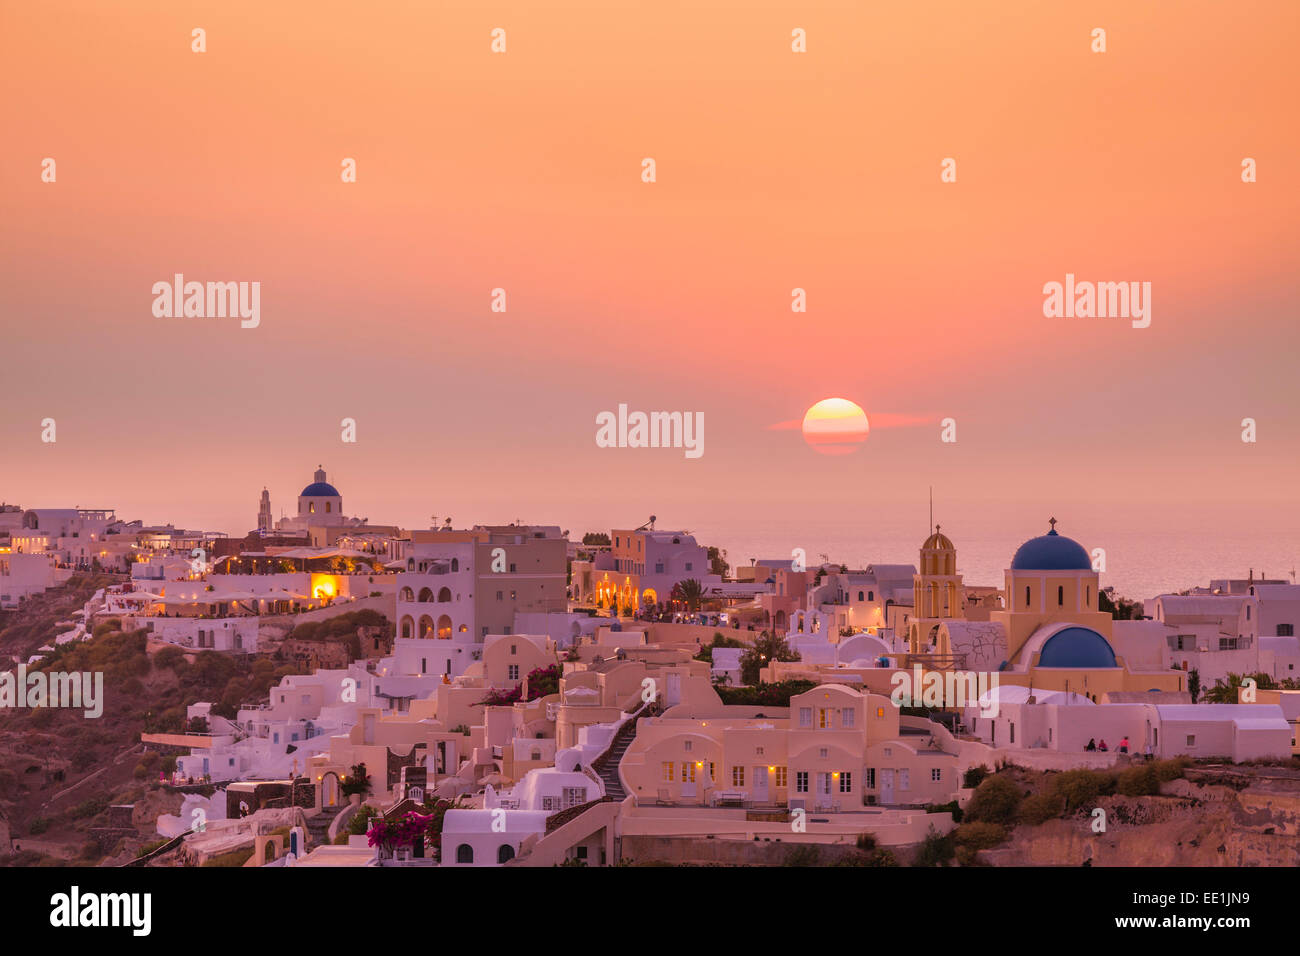 The village of Oia in the evening at sunset, Santorini (Thira) Cyclades Islands, Greek Islands, Greece, Europe - Stock Image